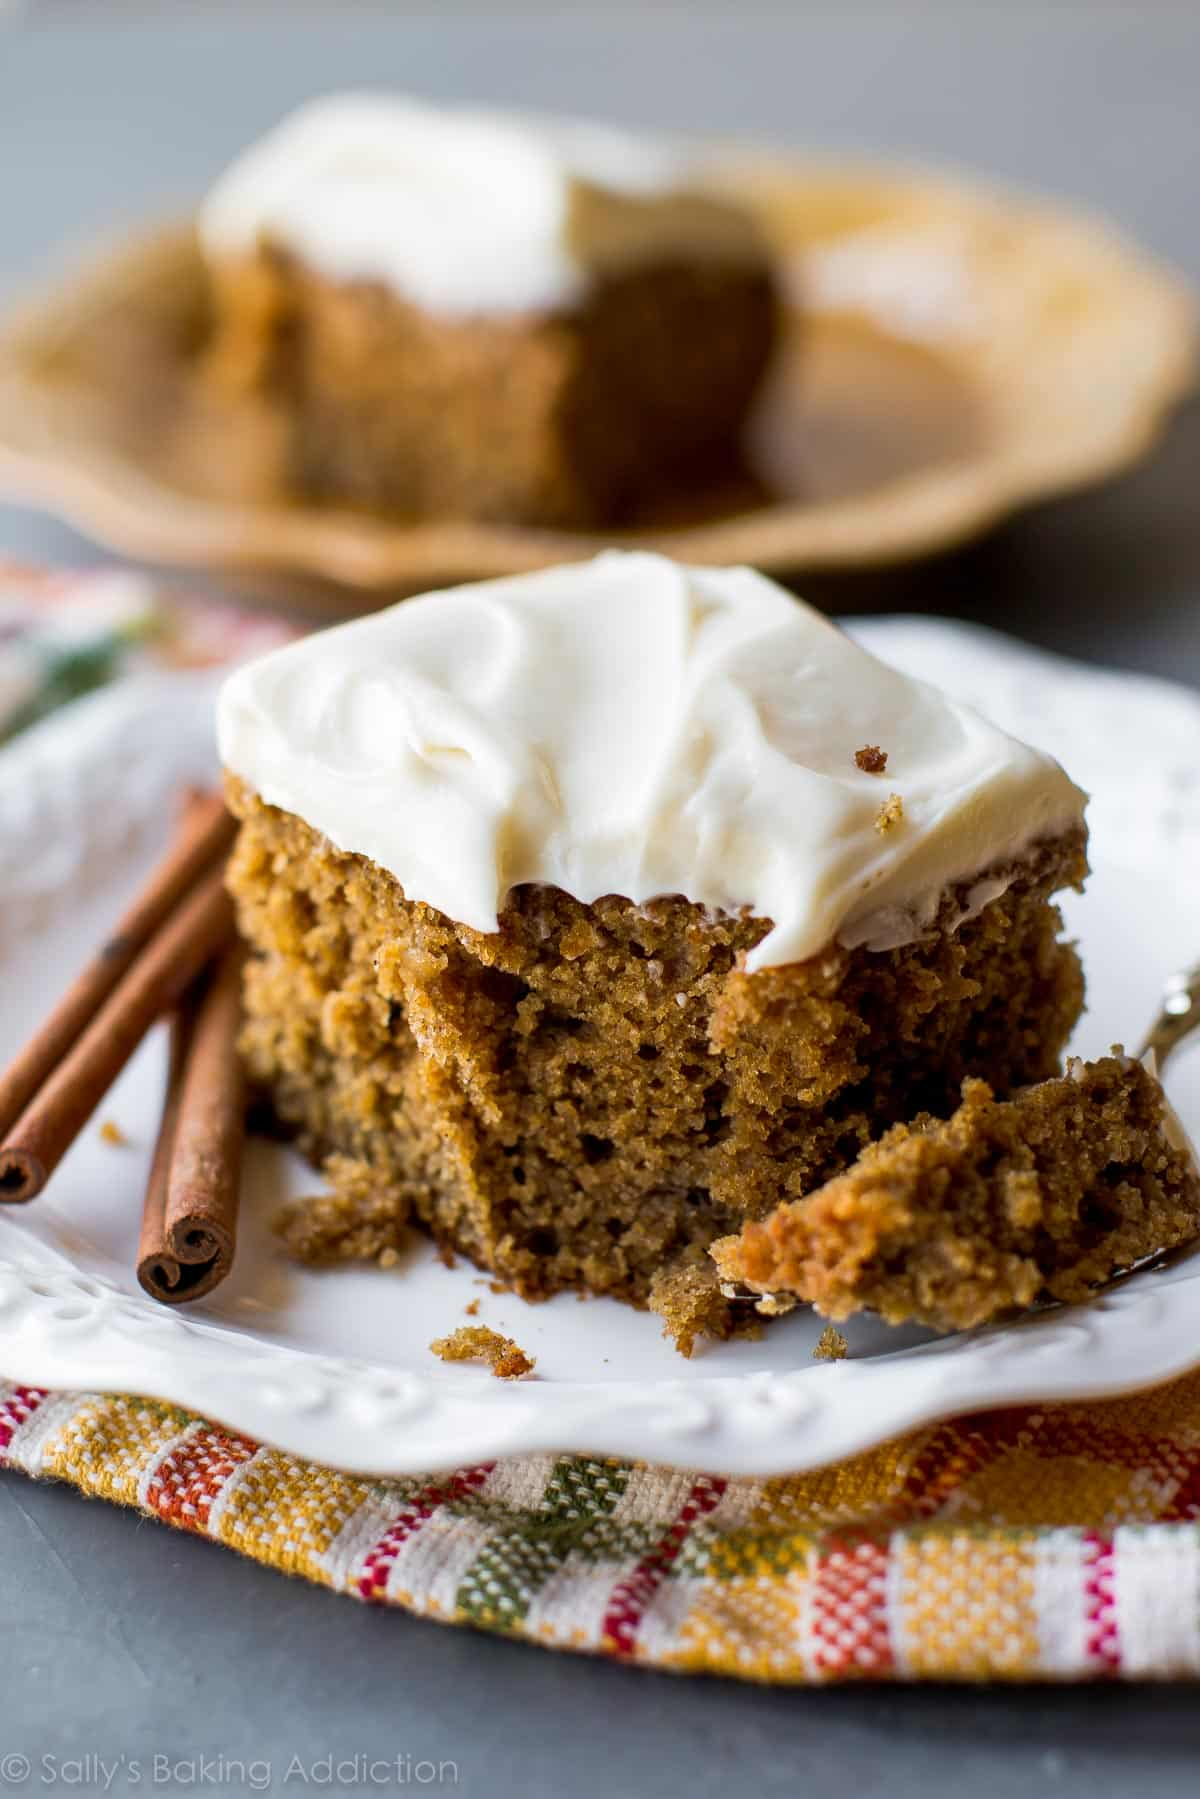 Homemade And Super Moist Spice Cake With Tangy Cream Cheese Frosting Such An Easy Recipe